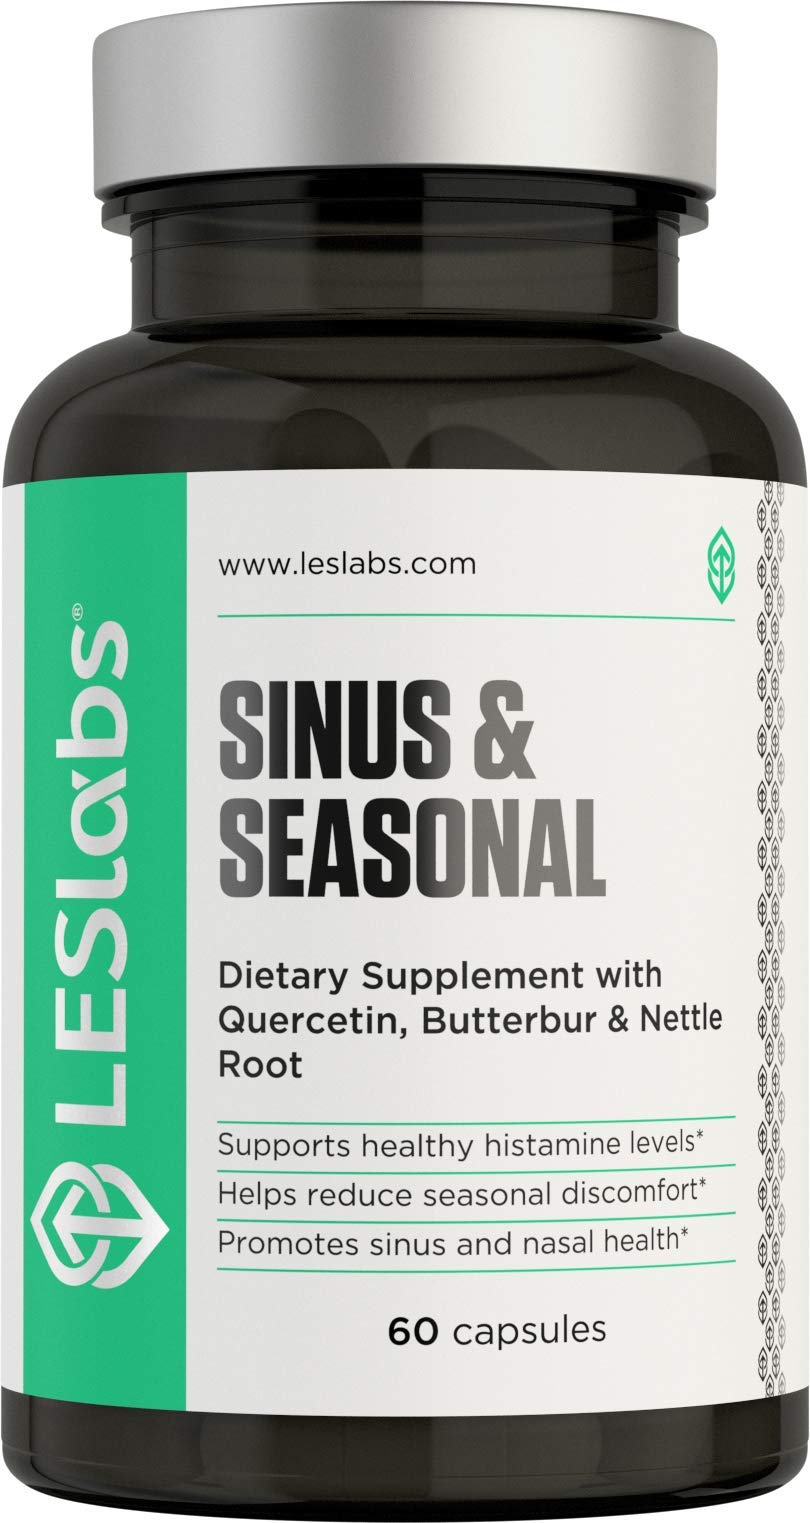 LES Labs Sinus & Seasonal, Sinus Relief & Seasonal Discomfort Supplement for Healthy Histamine Levels, Respiratory & Nasal Health with Butterbur, Quercetin & Nettle Root, 60 Capsules by LES Labs